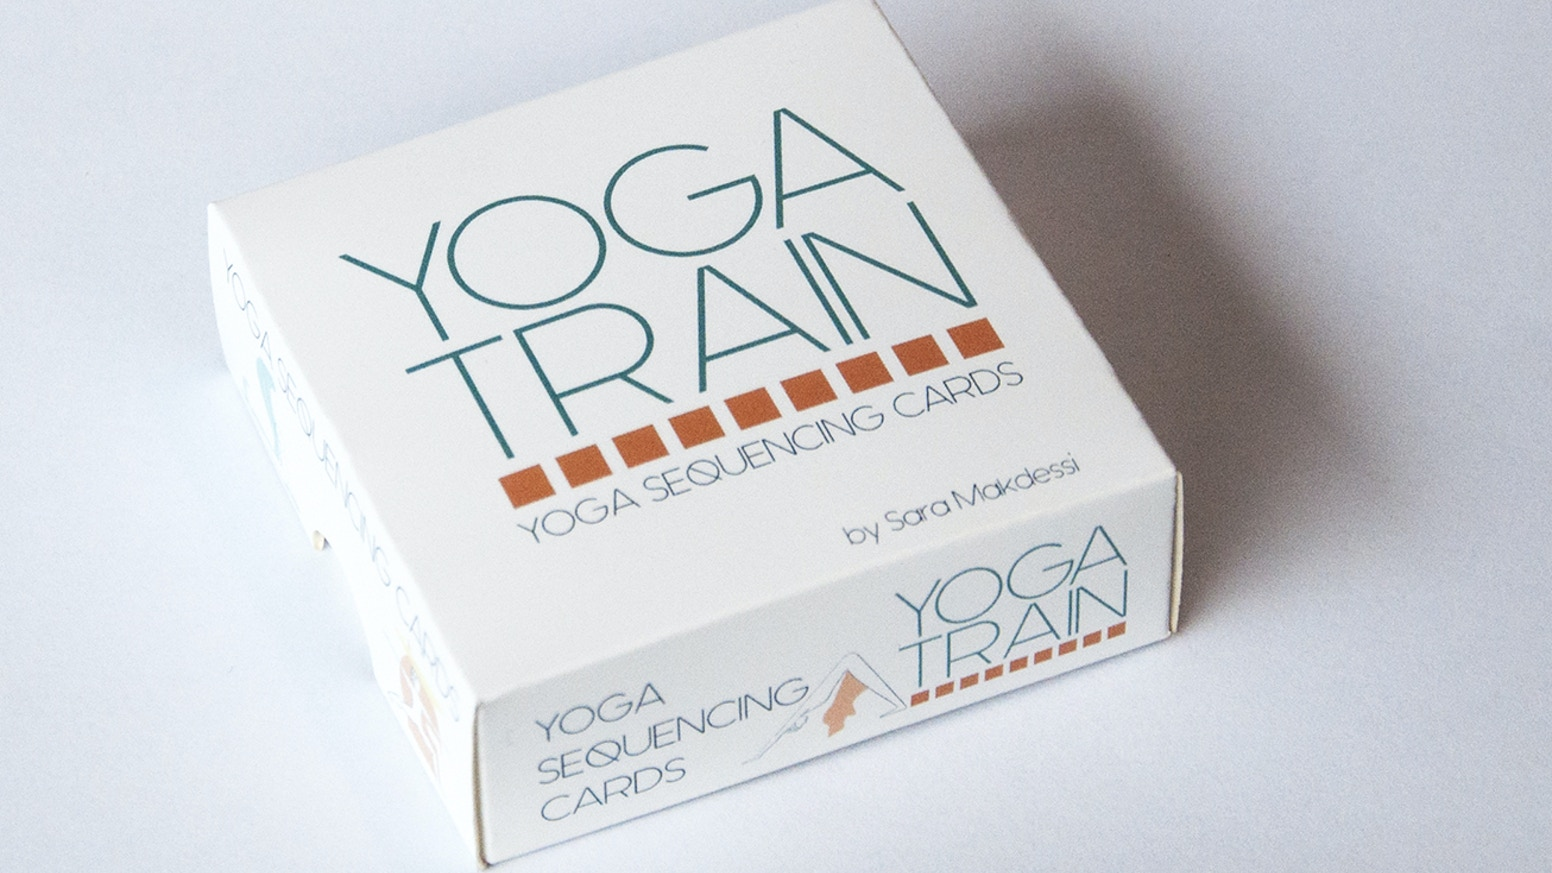 Yoga Train is a visual guide for yogis of all levels, it makes yoga sequencing simple, easy and colorful!